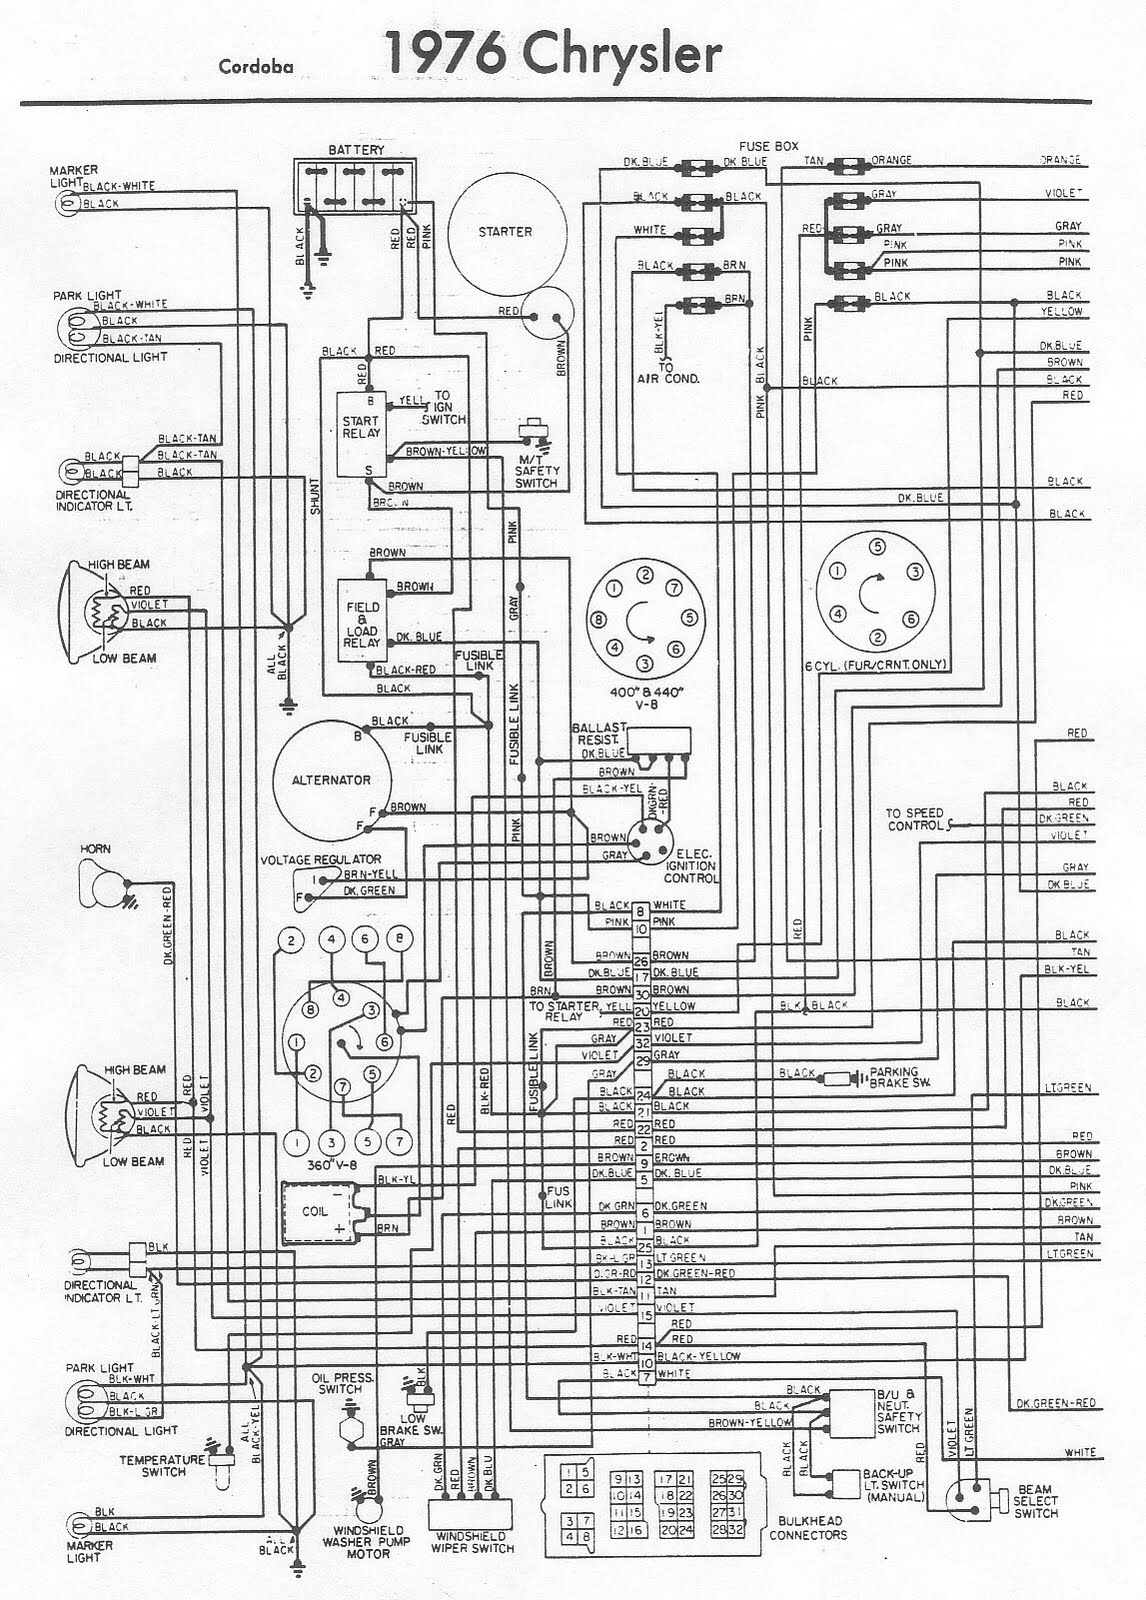 1994 chrysler town and country wiring diagram 1994 automotive chrysler town and country wiring diagram 1976%2bchrysler%2bcordoba%2bwiring%2bdiagram